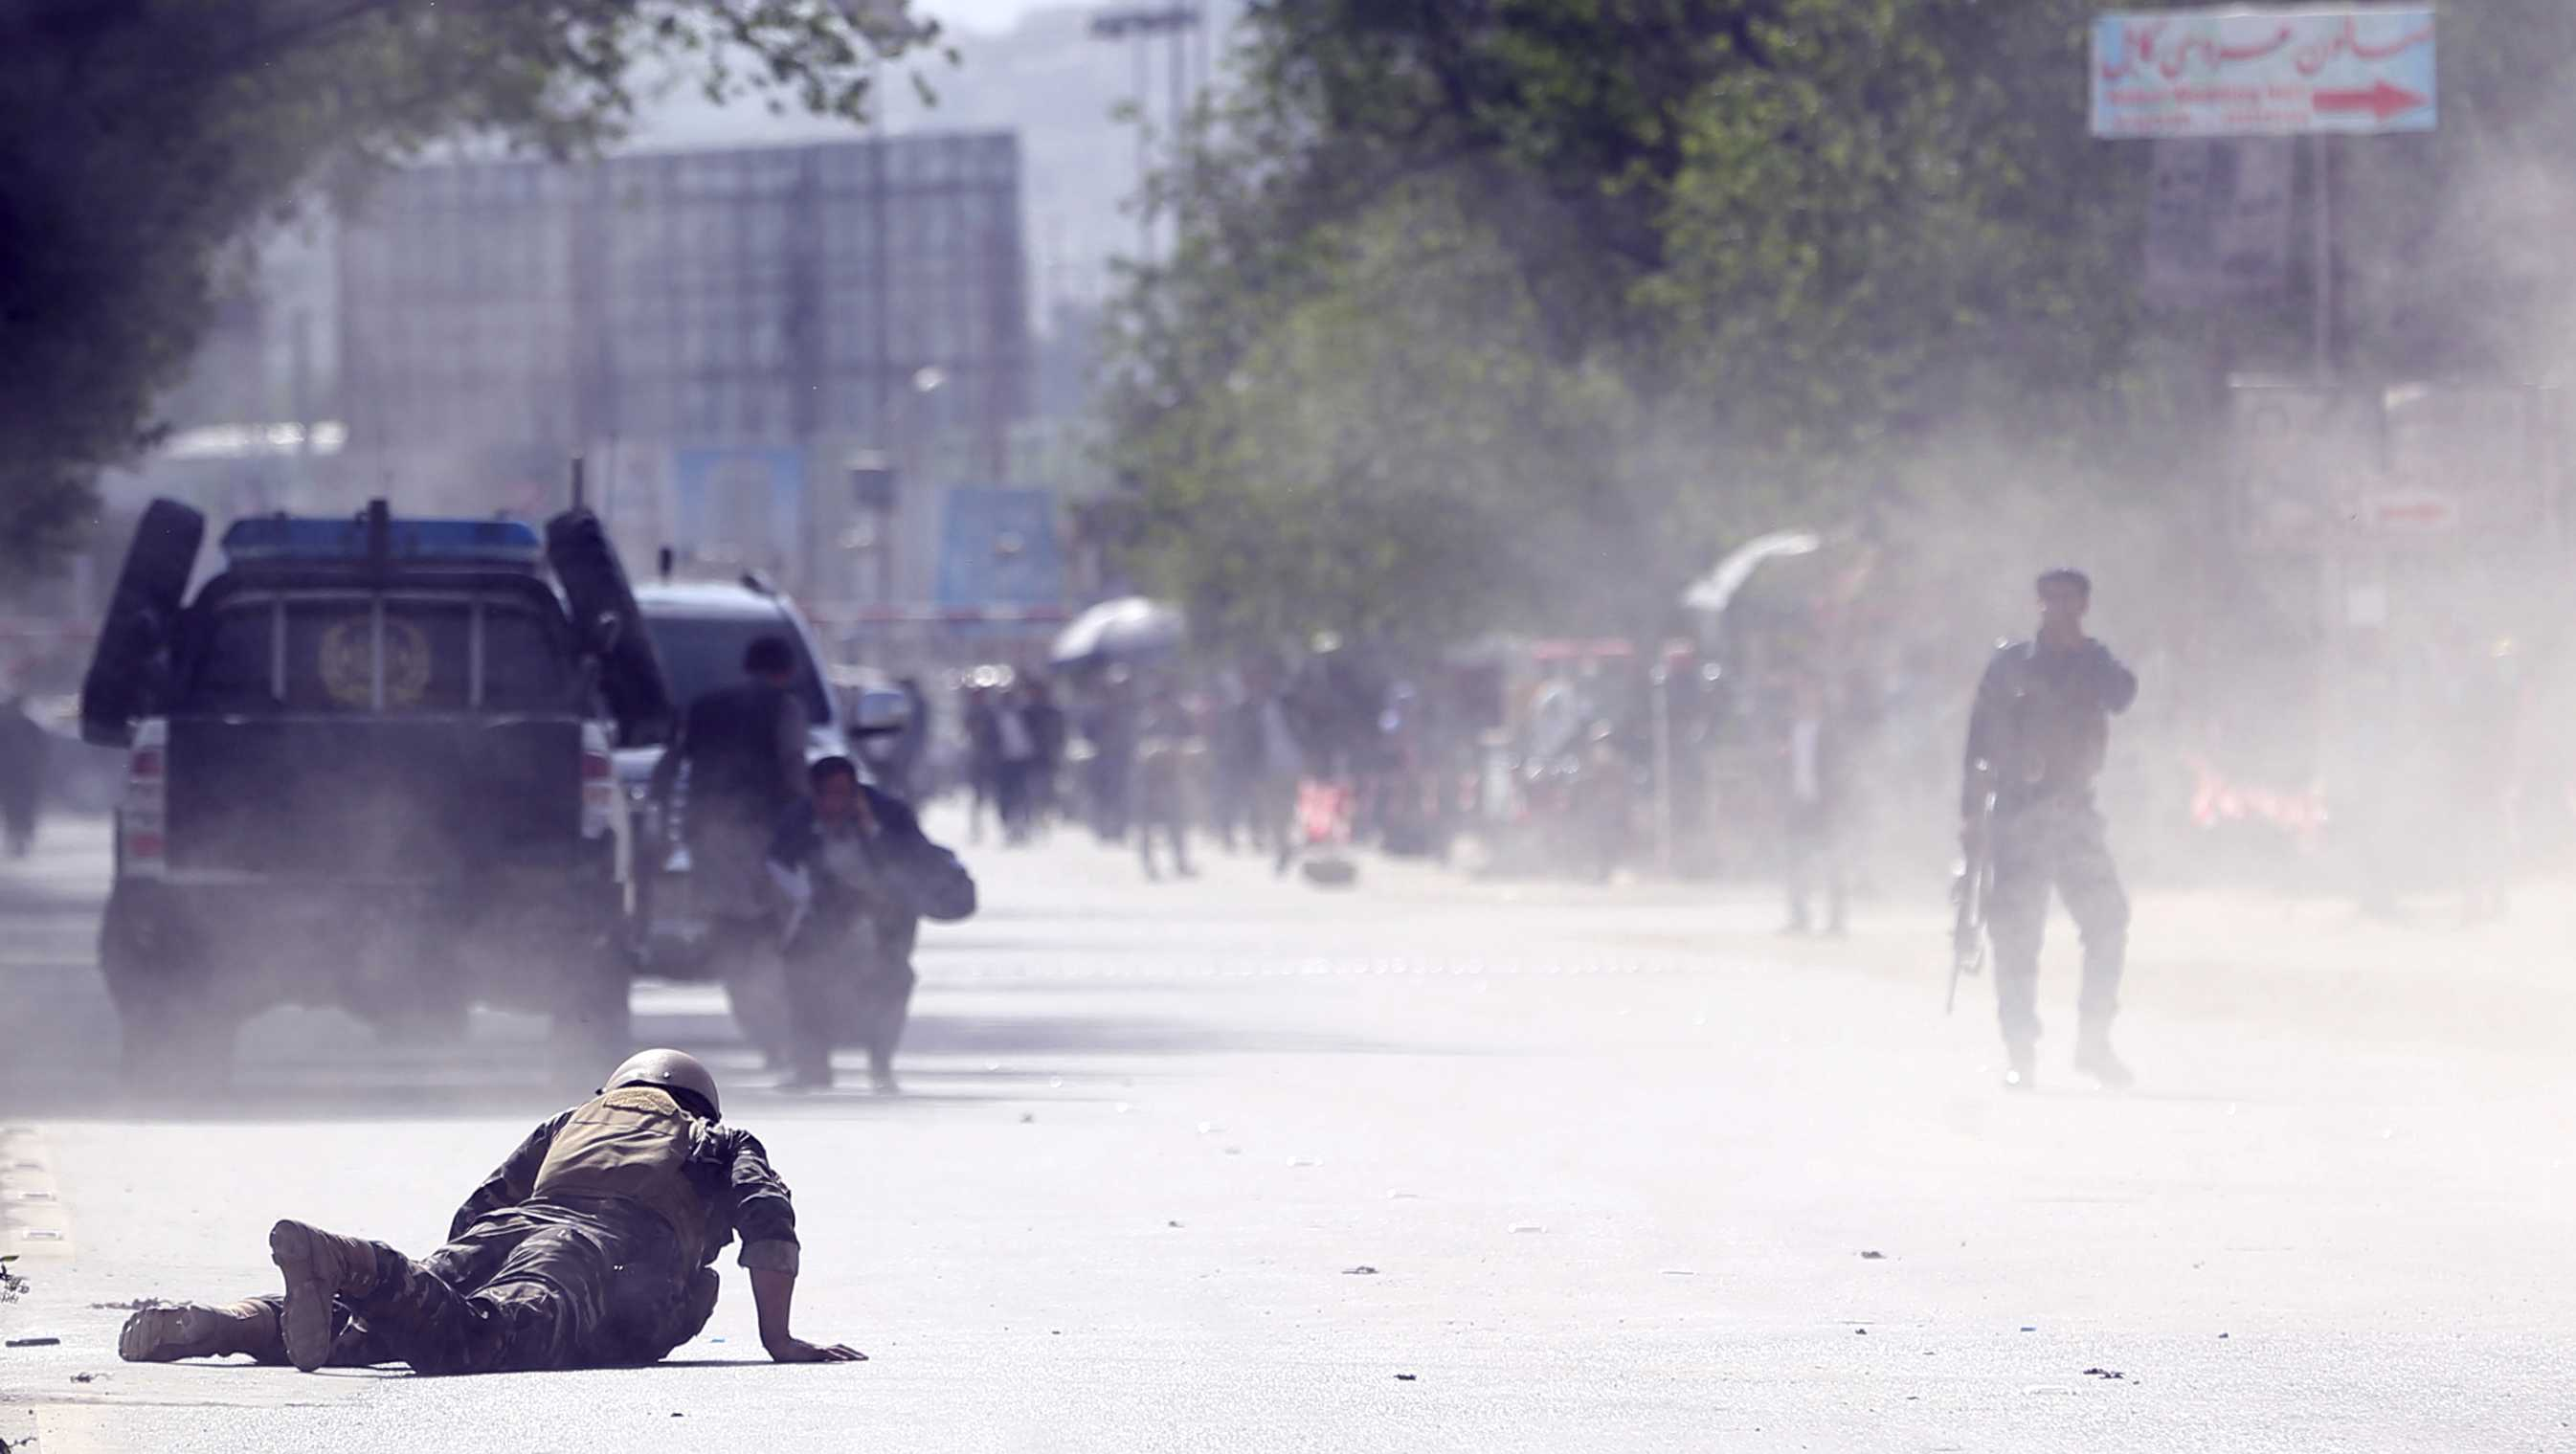 A security force and a civilian lie low at the site of a suicide attack after the second bombing in Kabul, Afghanistan, Monday, April 30, 2018. A coordinated double suicide bombing hit central Kabul on Monday morning.